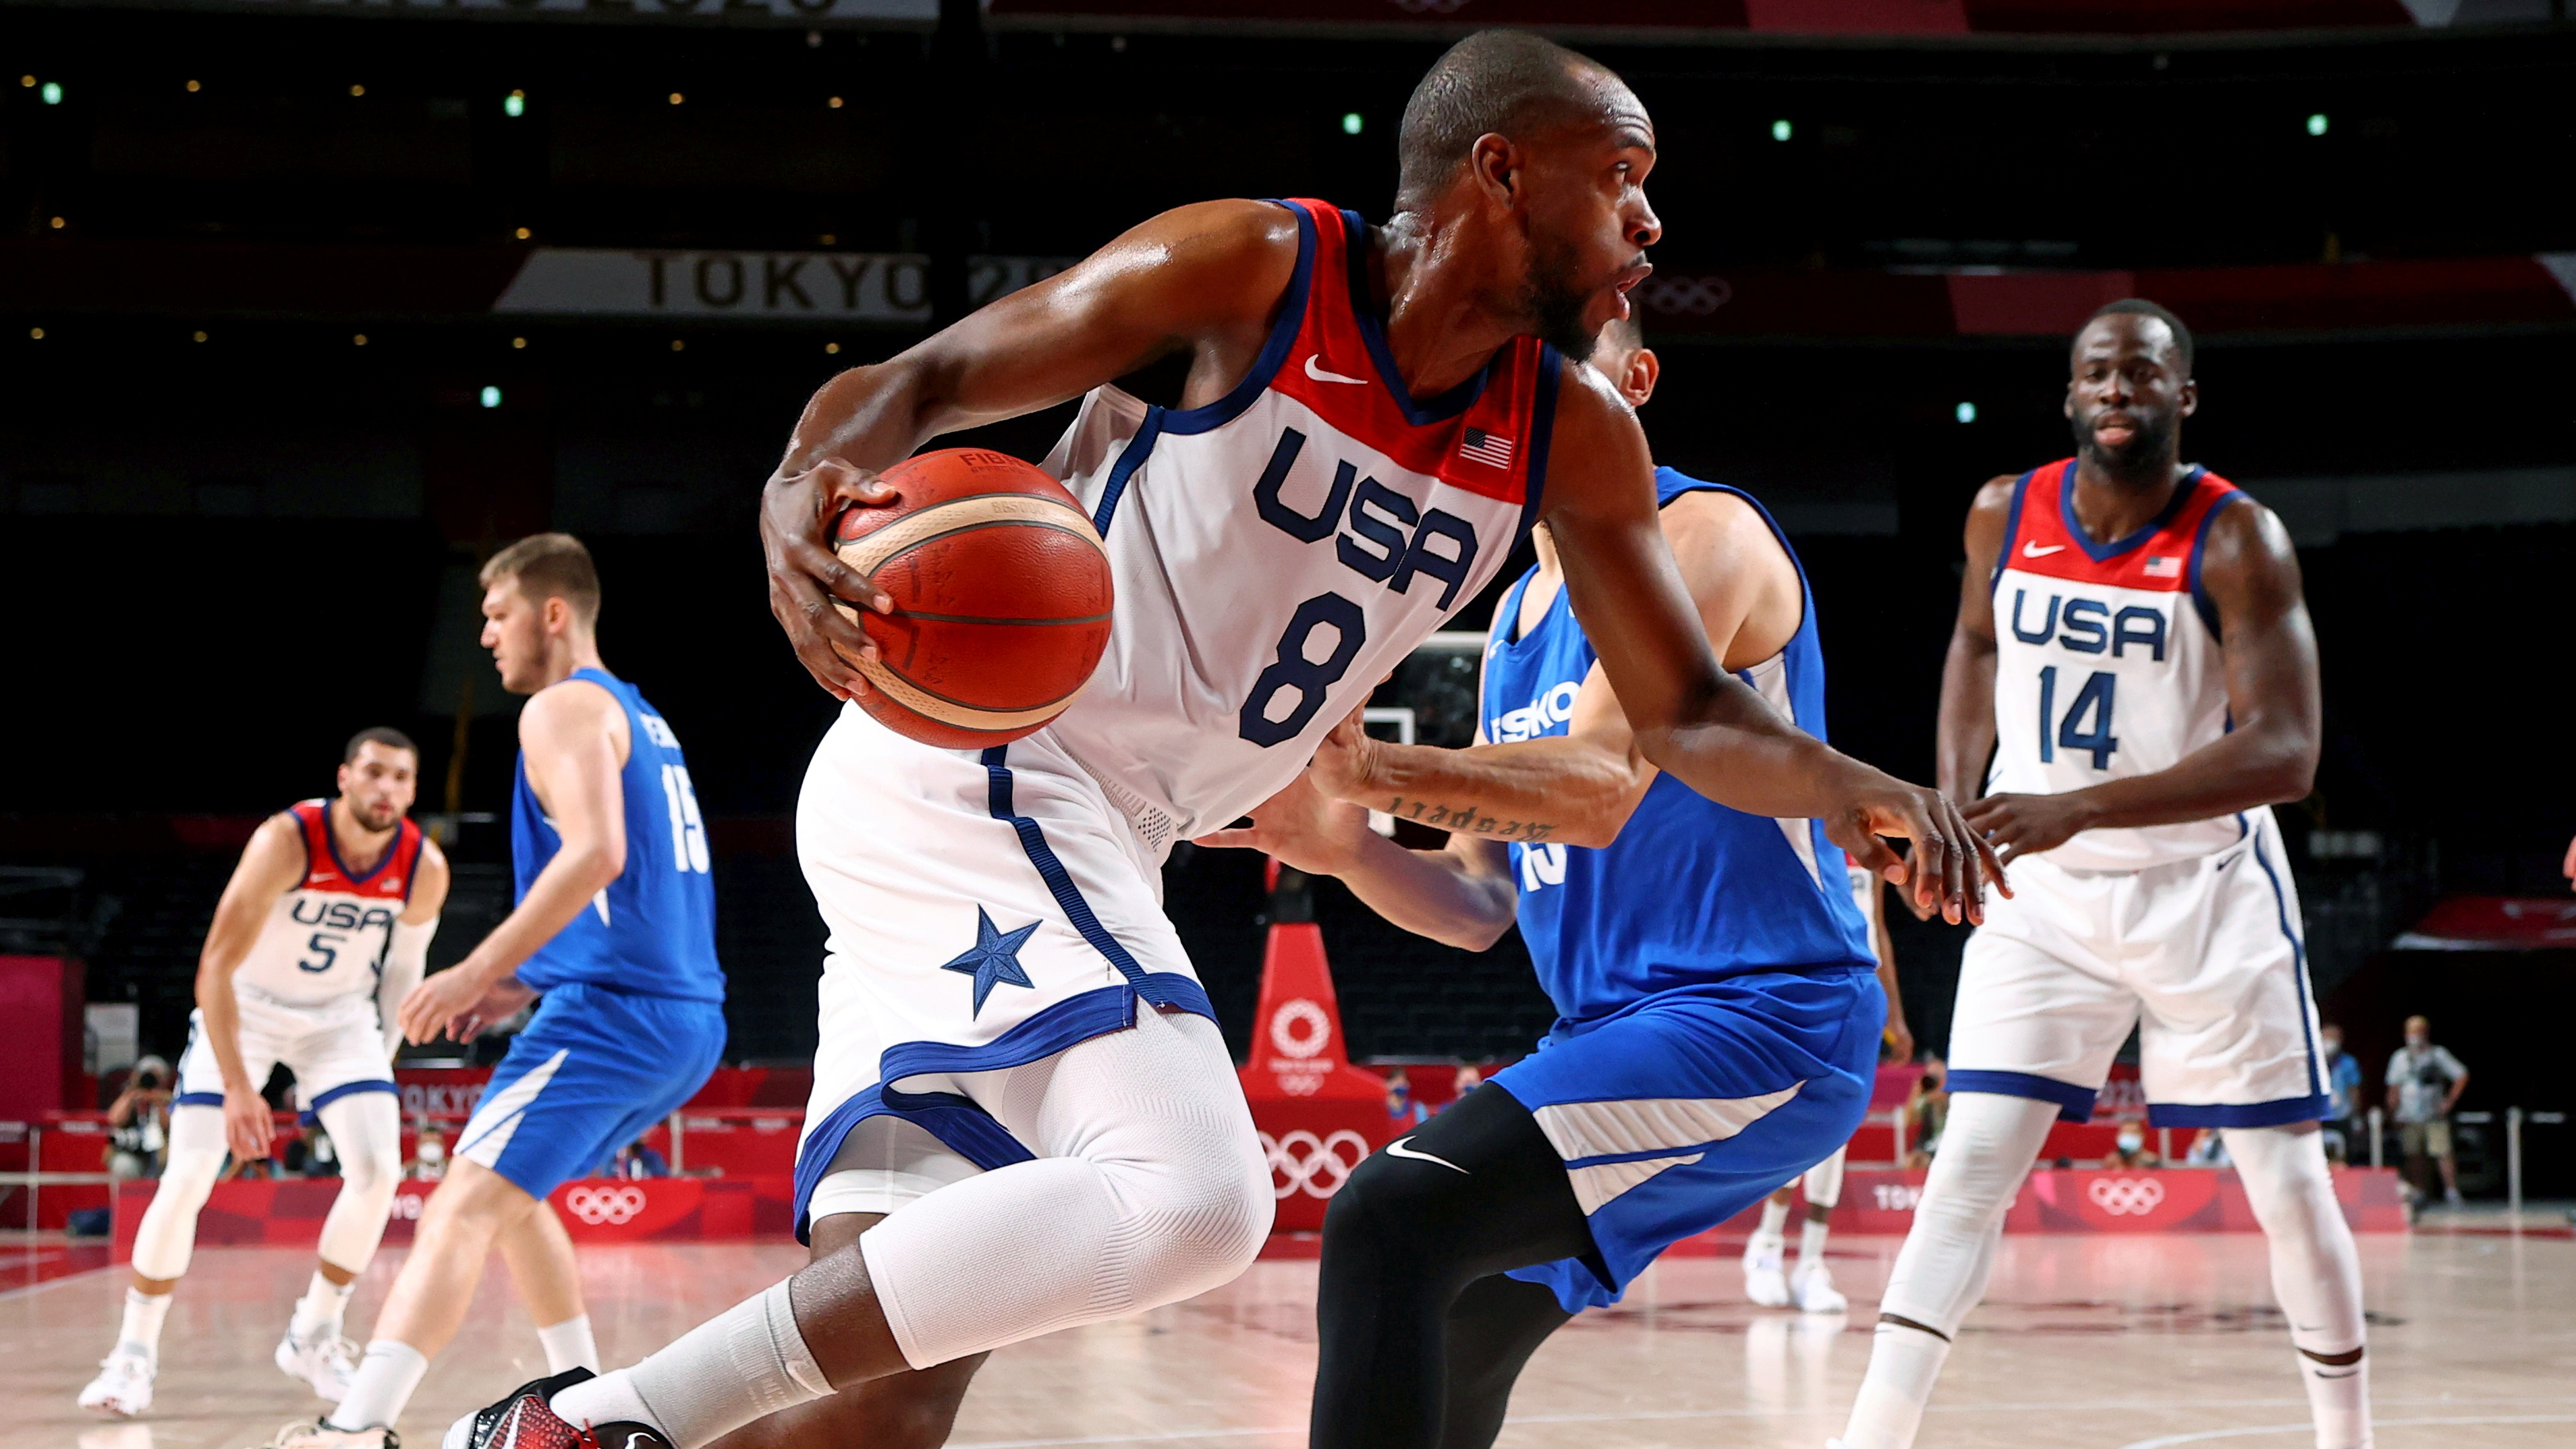 Tokyo 2020 Olympics - Basketball - Men - Group A - United States v Czech Republic - Saitama Super Arena, Saitama, Japan - July 31, 2021. Khris Middleton of the United States in action REUTERS/Brian Snyder